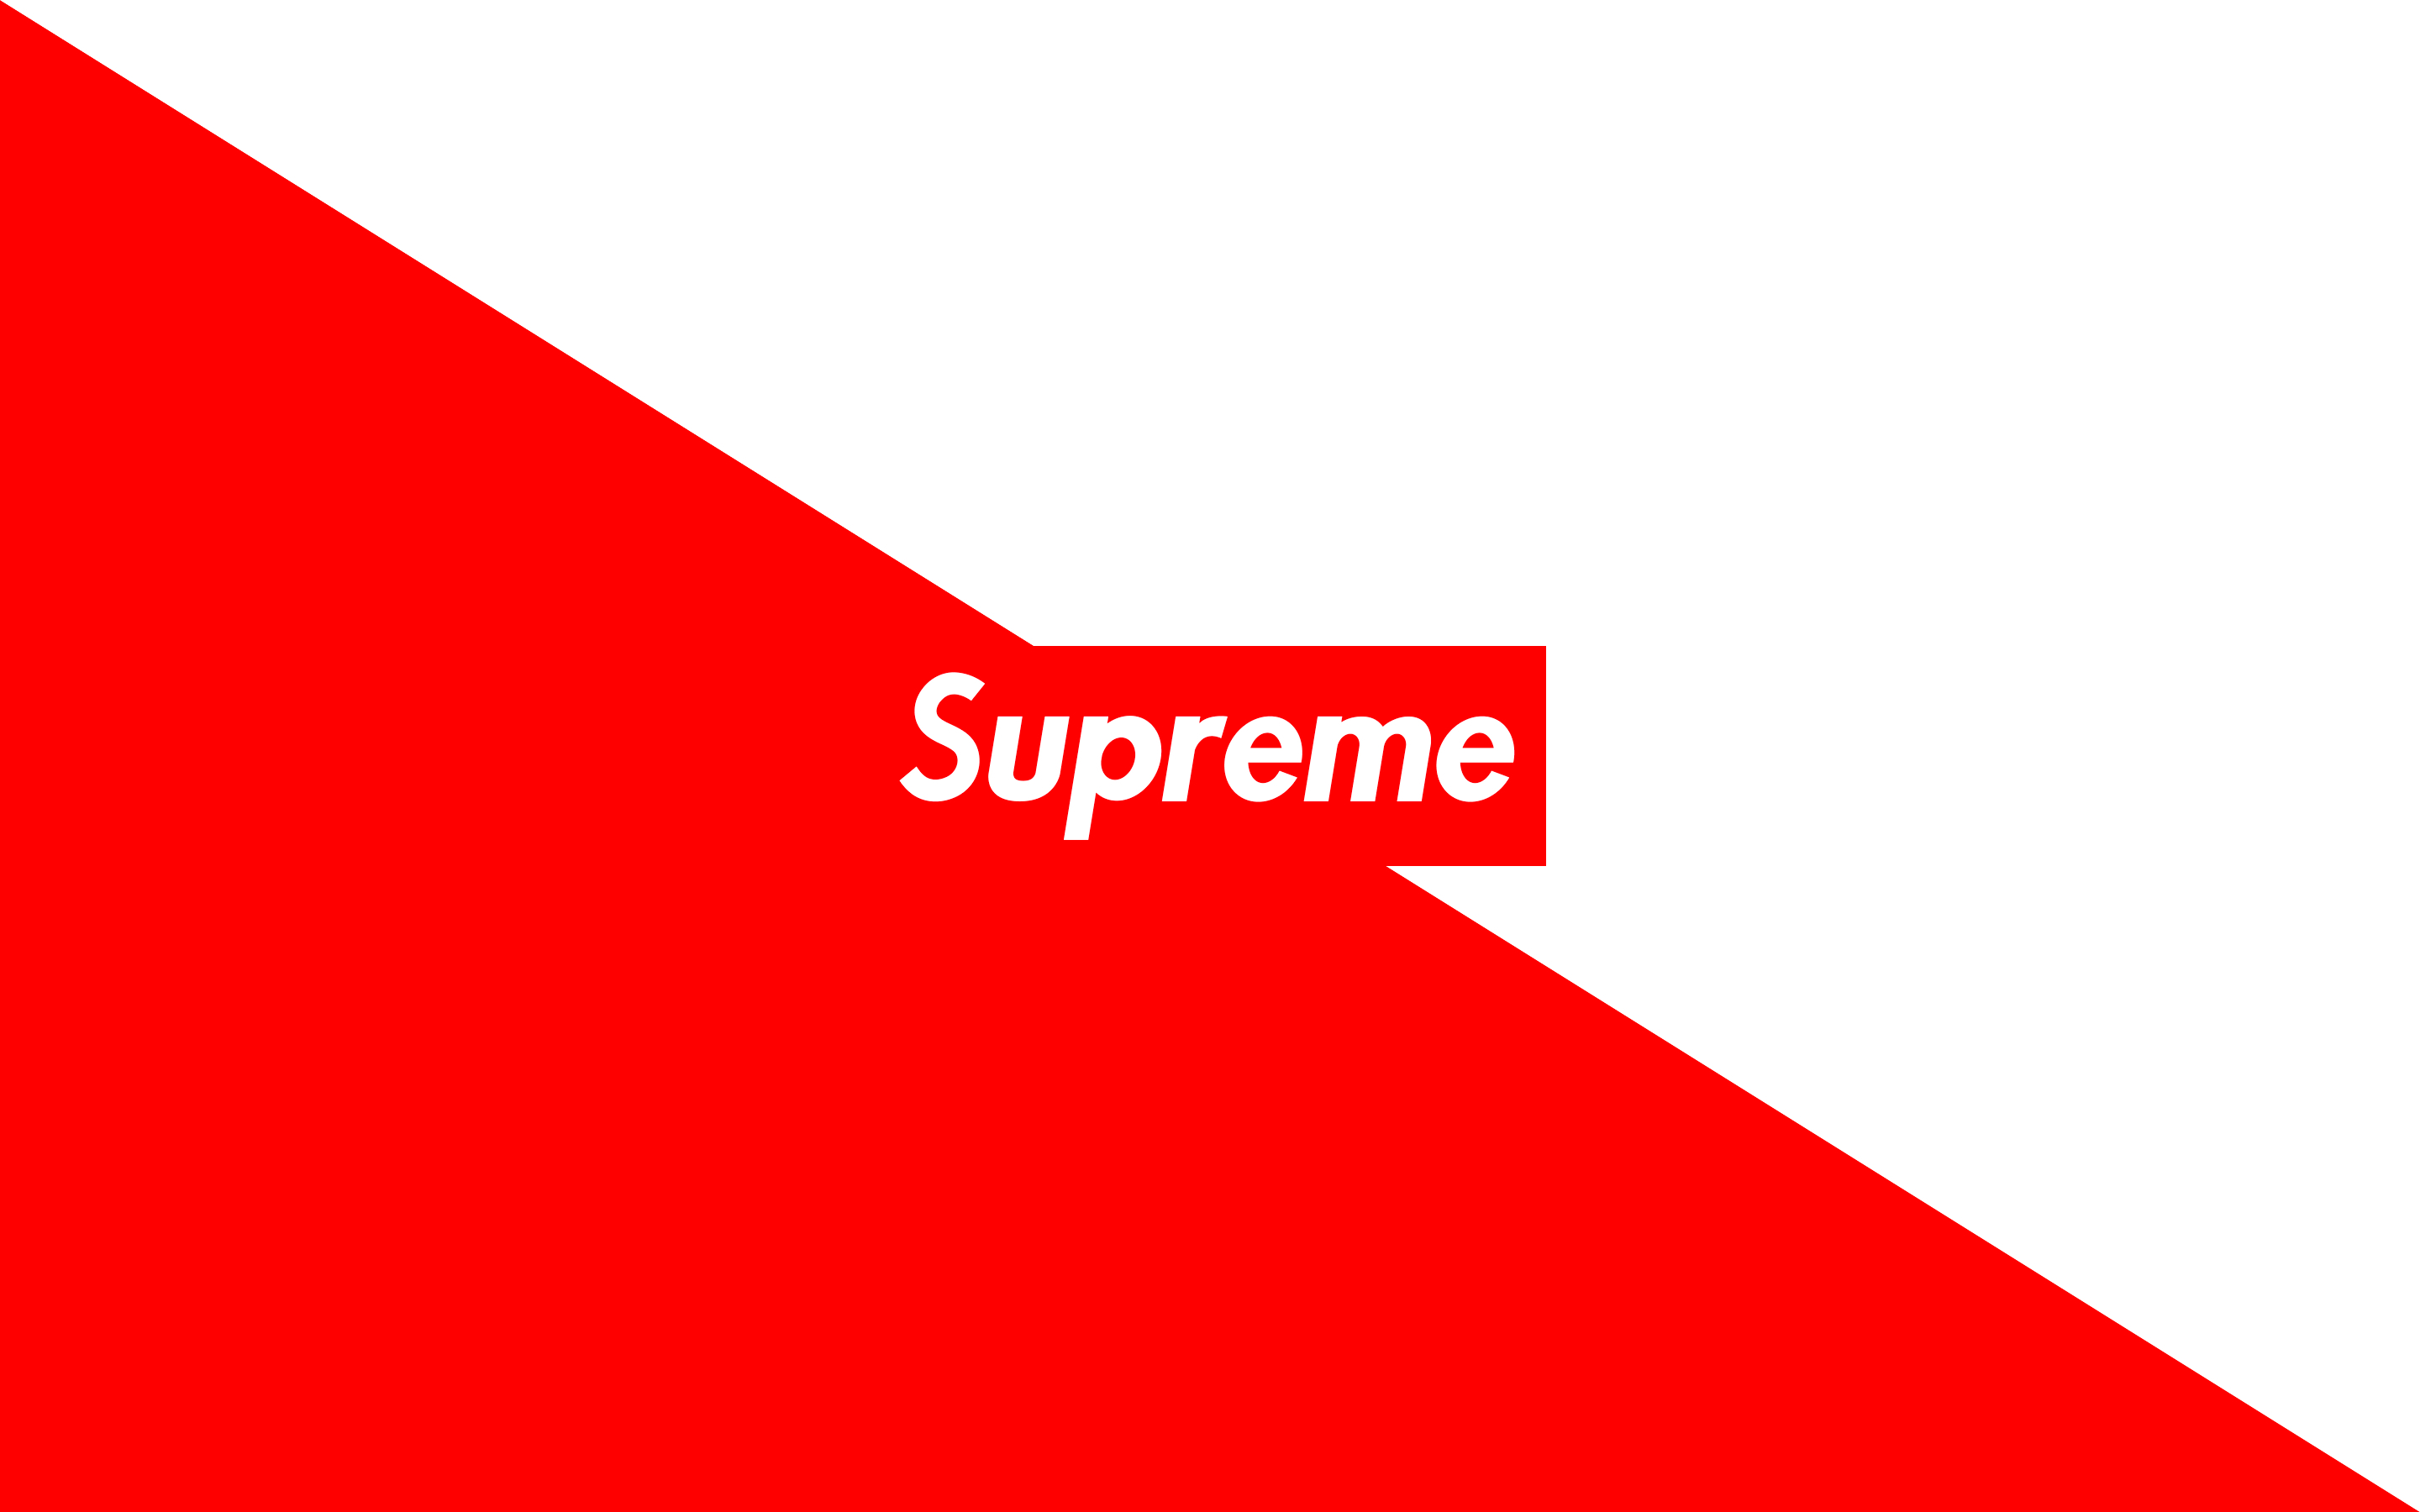 Supreme Know Your Meme